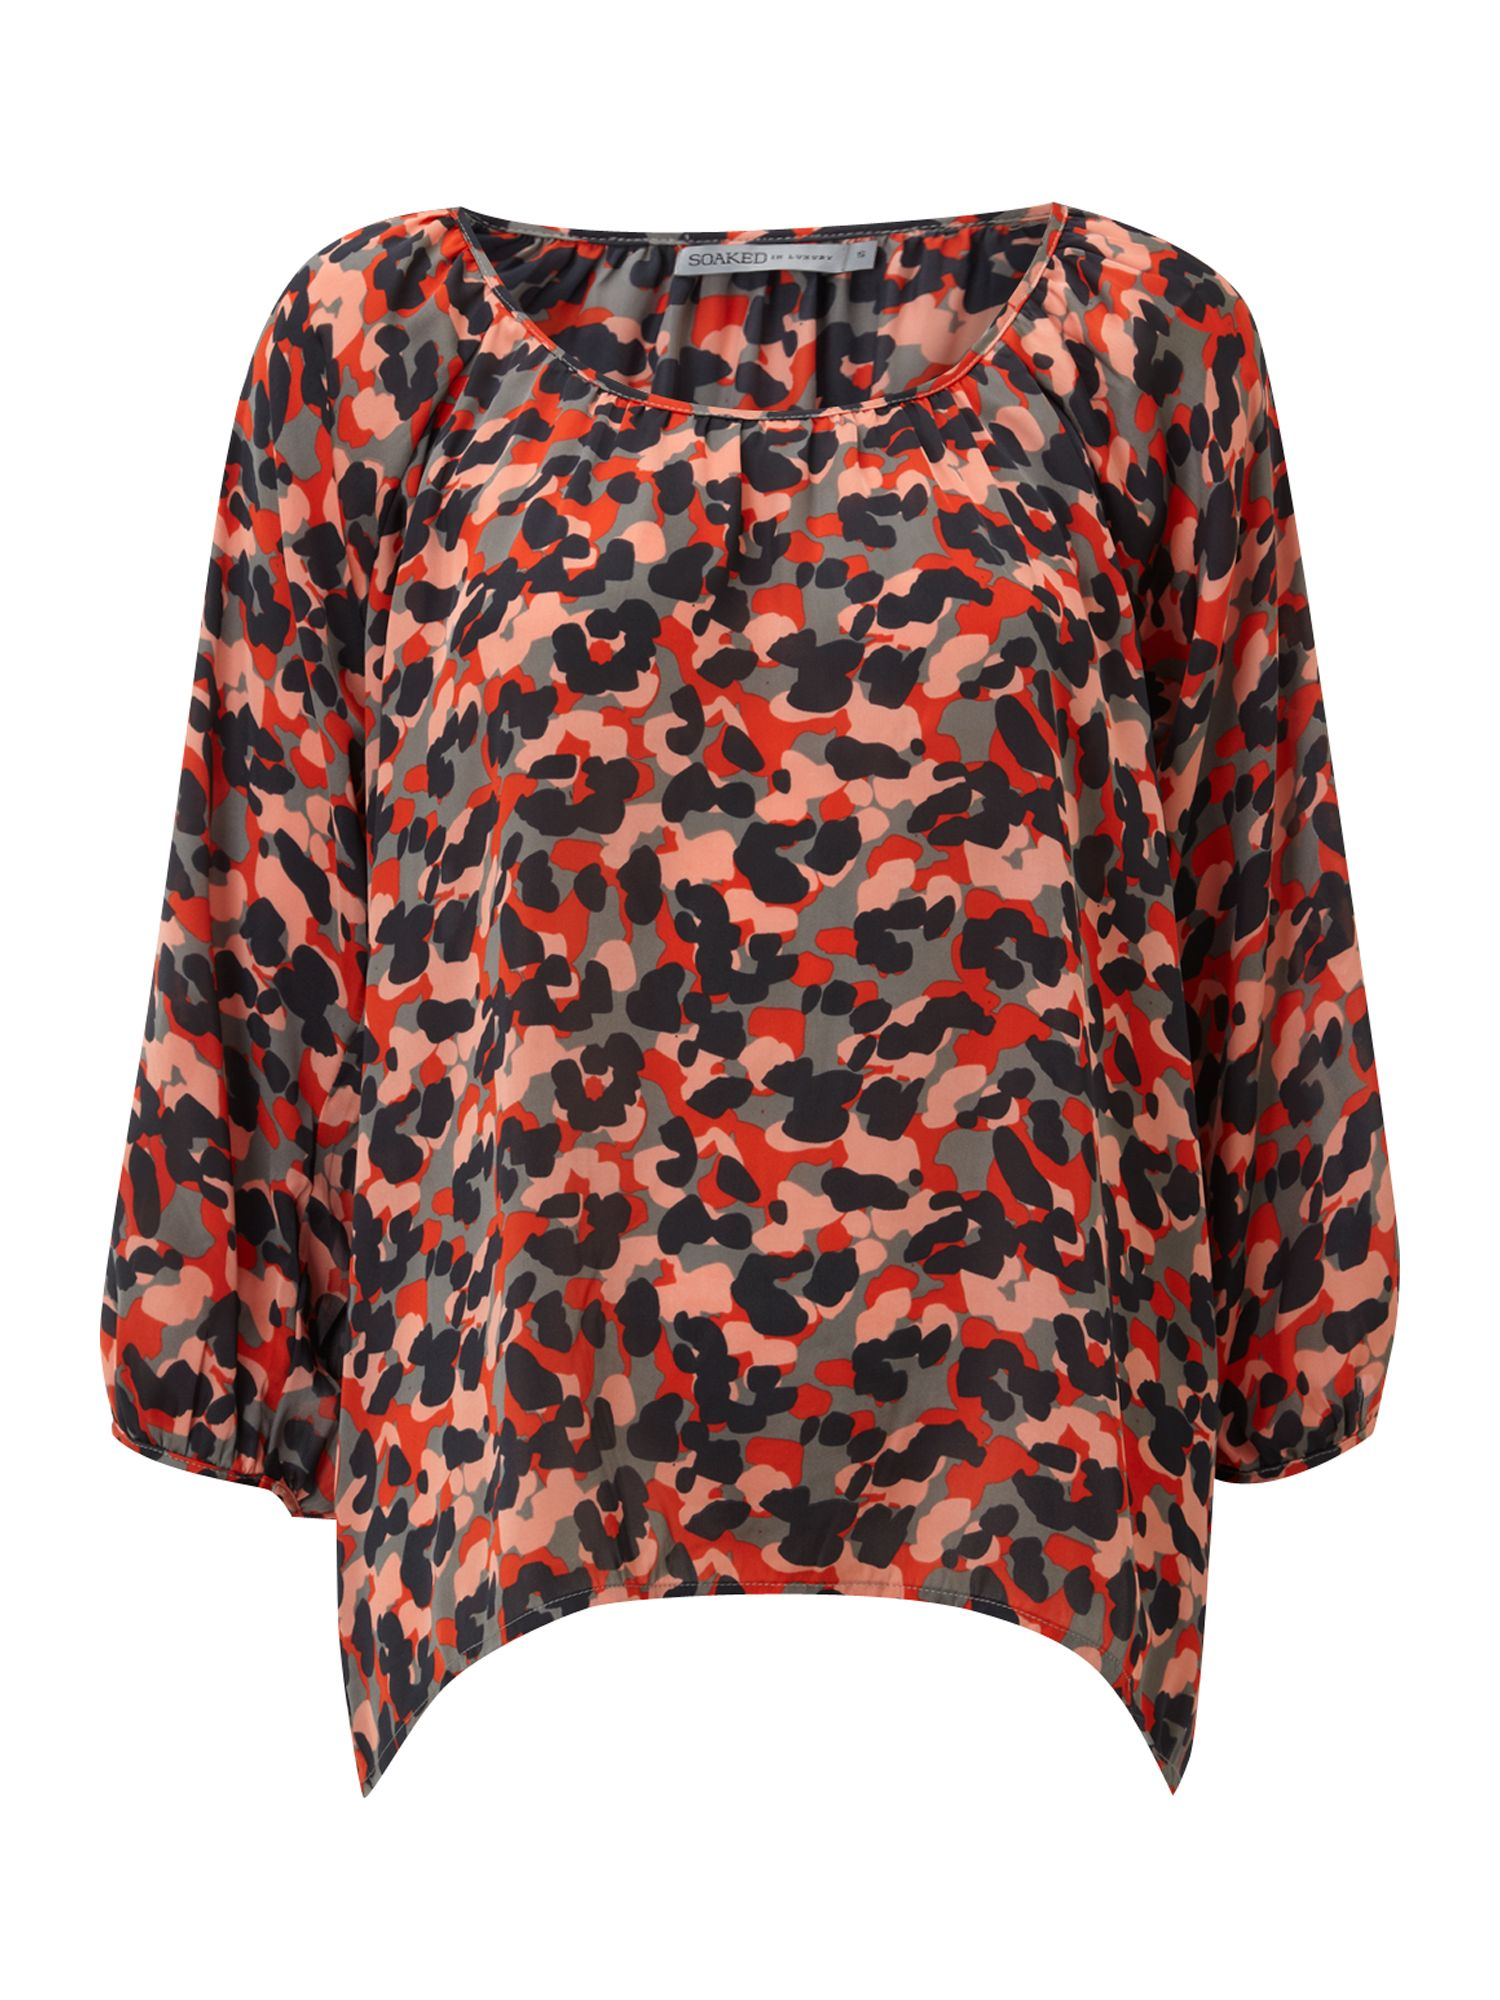 Soaked in Luxury Womens Soaked in Luxury Flanis blouse, product image